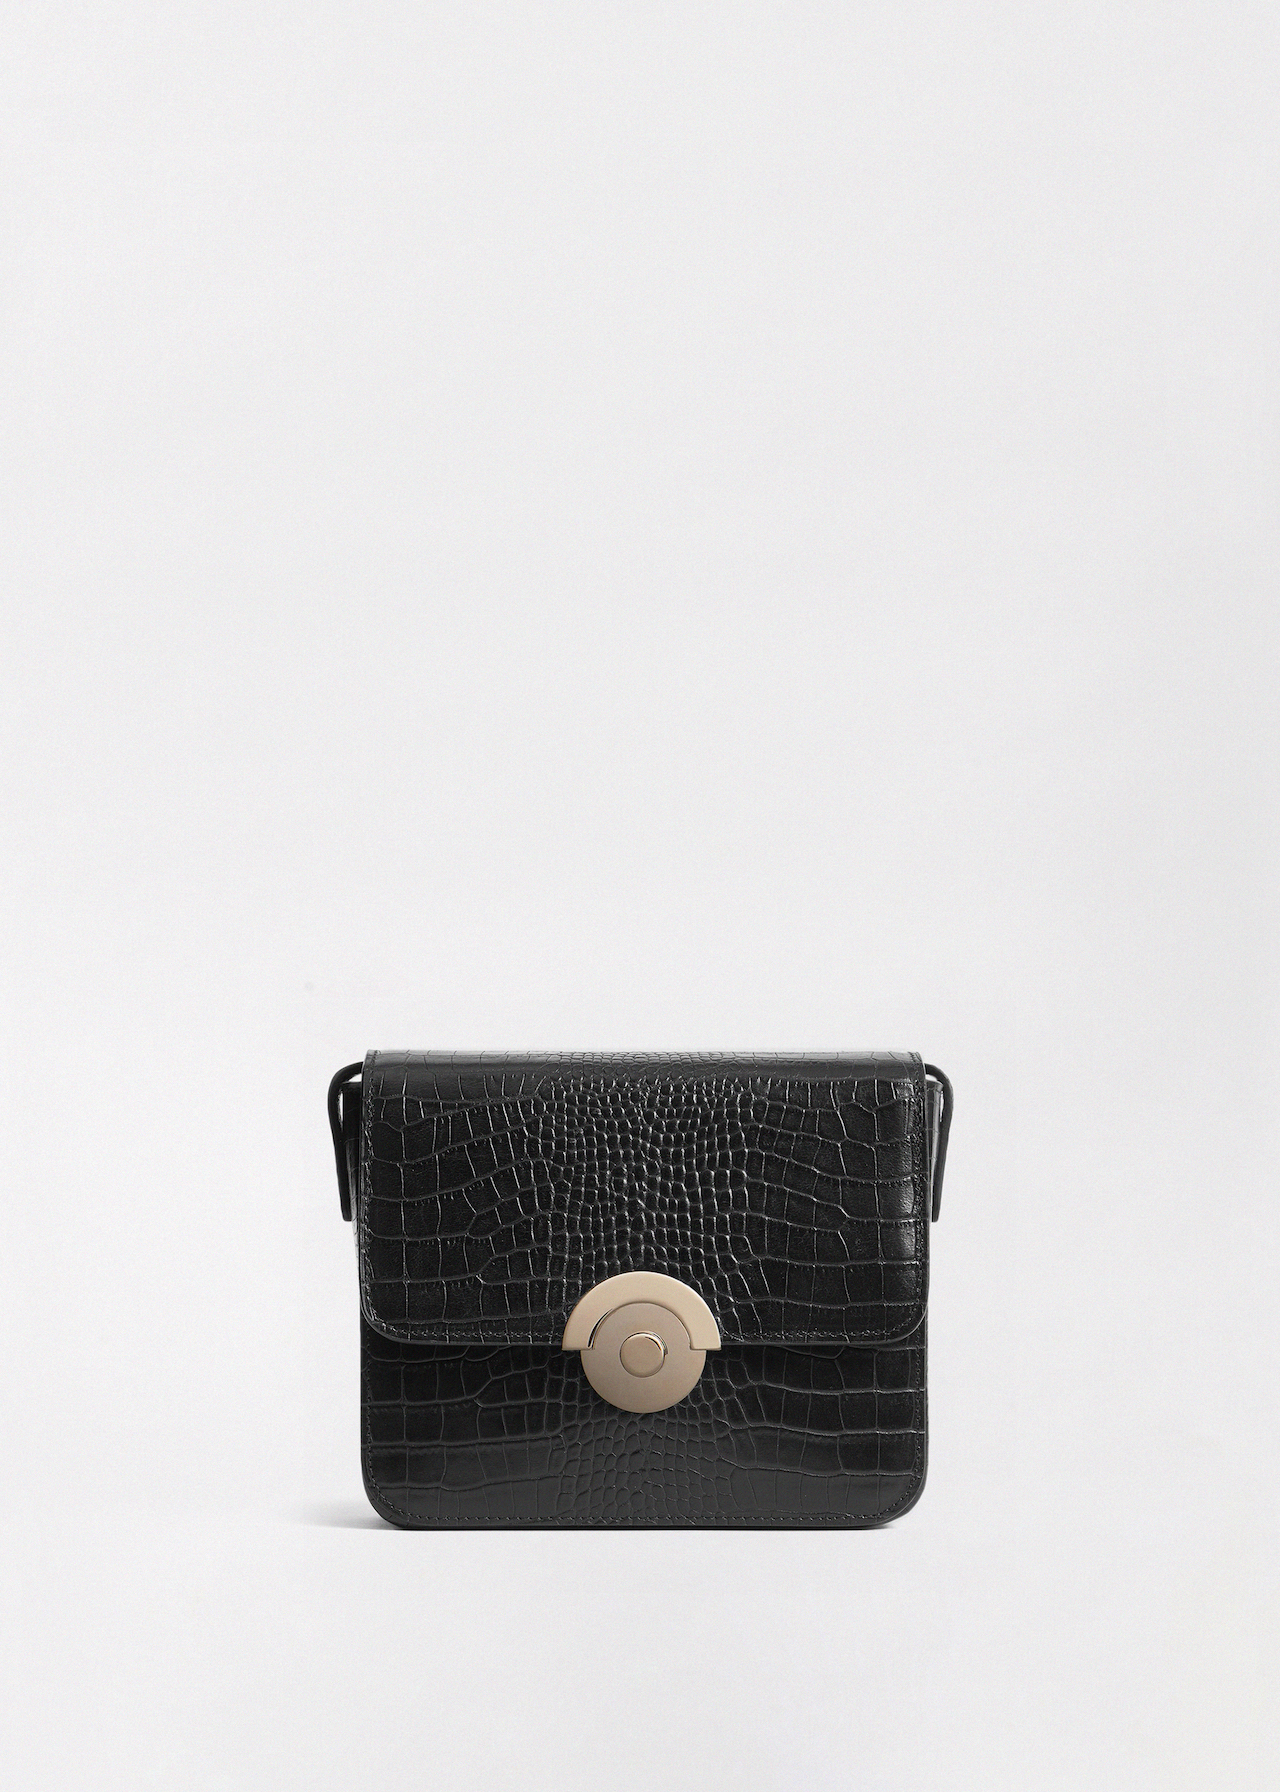 Small Box Bag in Embossed Leather - Black - CO